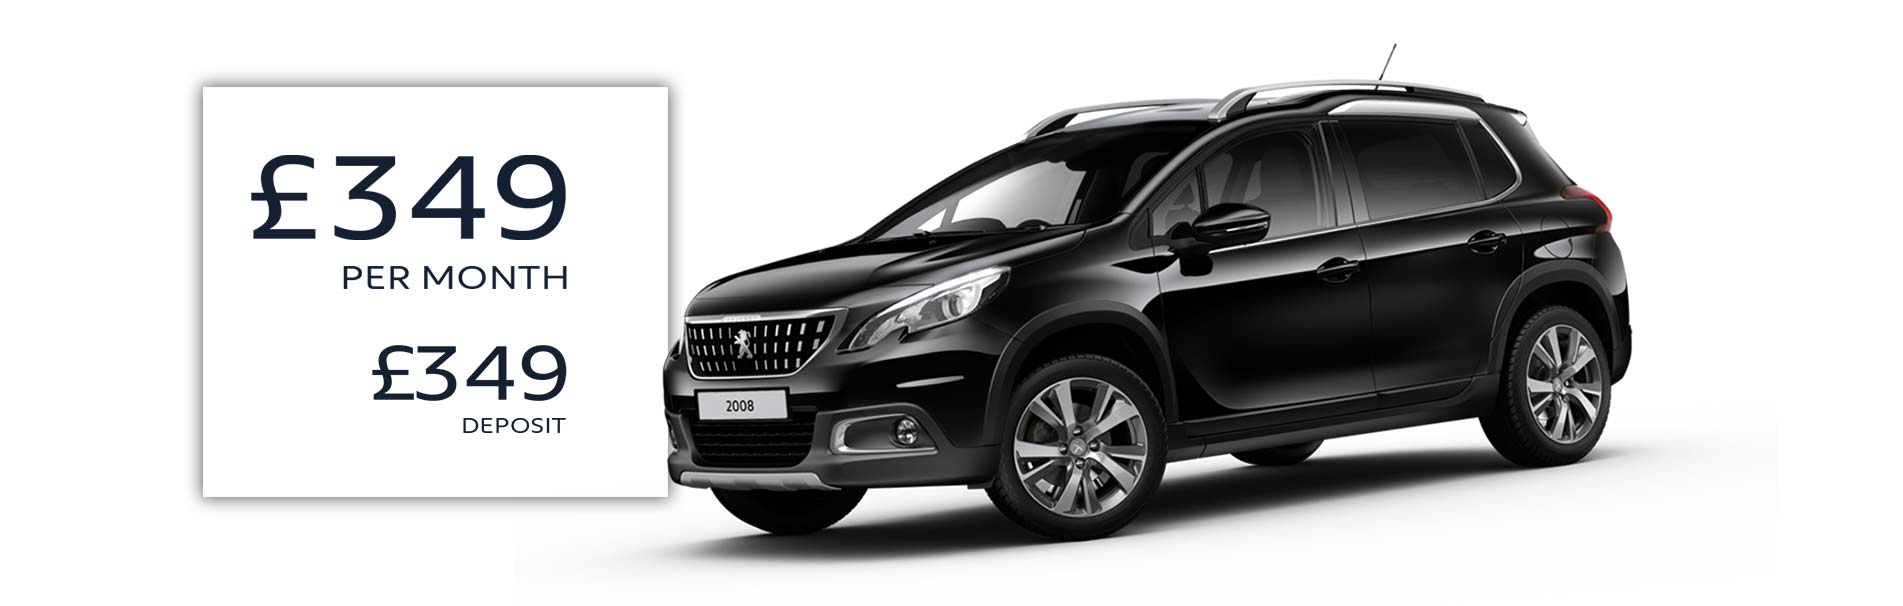 peugeot-2008-suv-allure-immediate-delivery-hampshire-sli